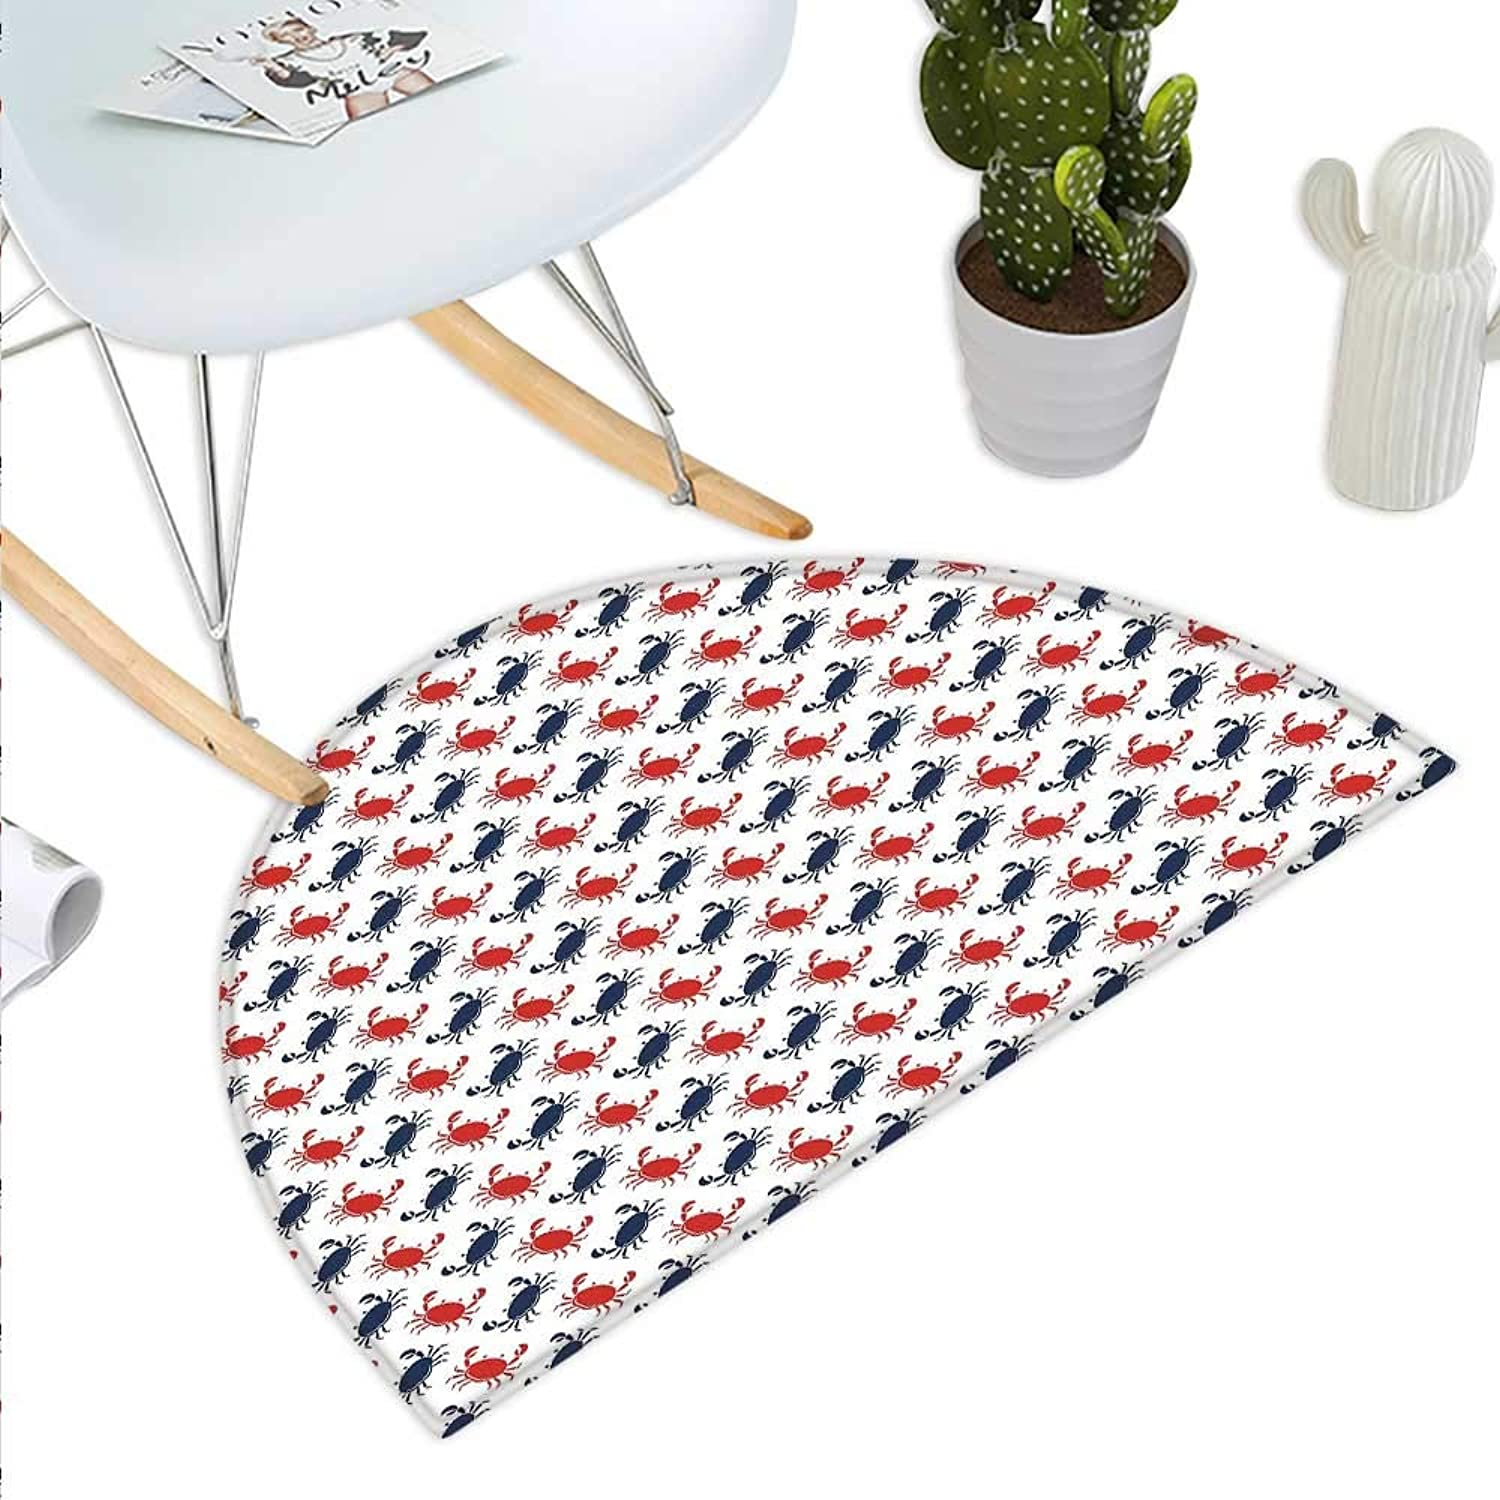 Crabs Semicircle Doormat Sea Animals Theme Crabs on The White Background with Vintage Style Pattern Print Halfmoon doormats H 23.6  xD 35.4  bluee and Red